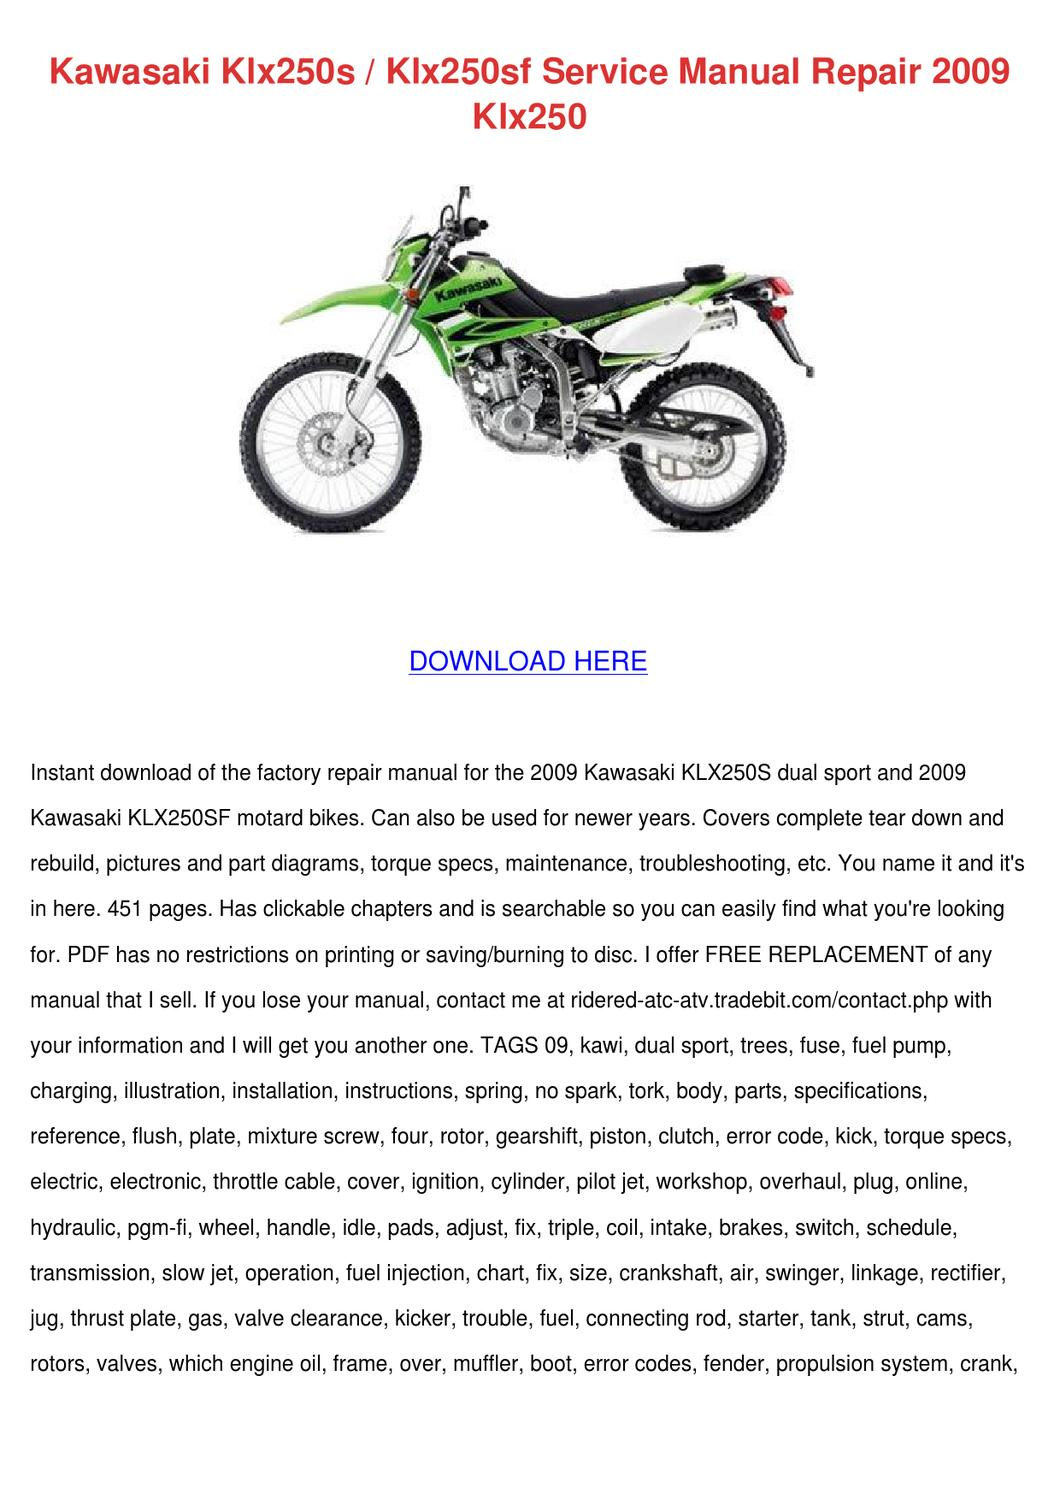 Kawasaki Klx250s Klx250sf Service Manual Repa by